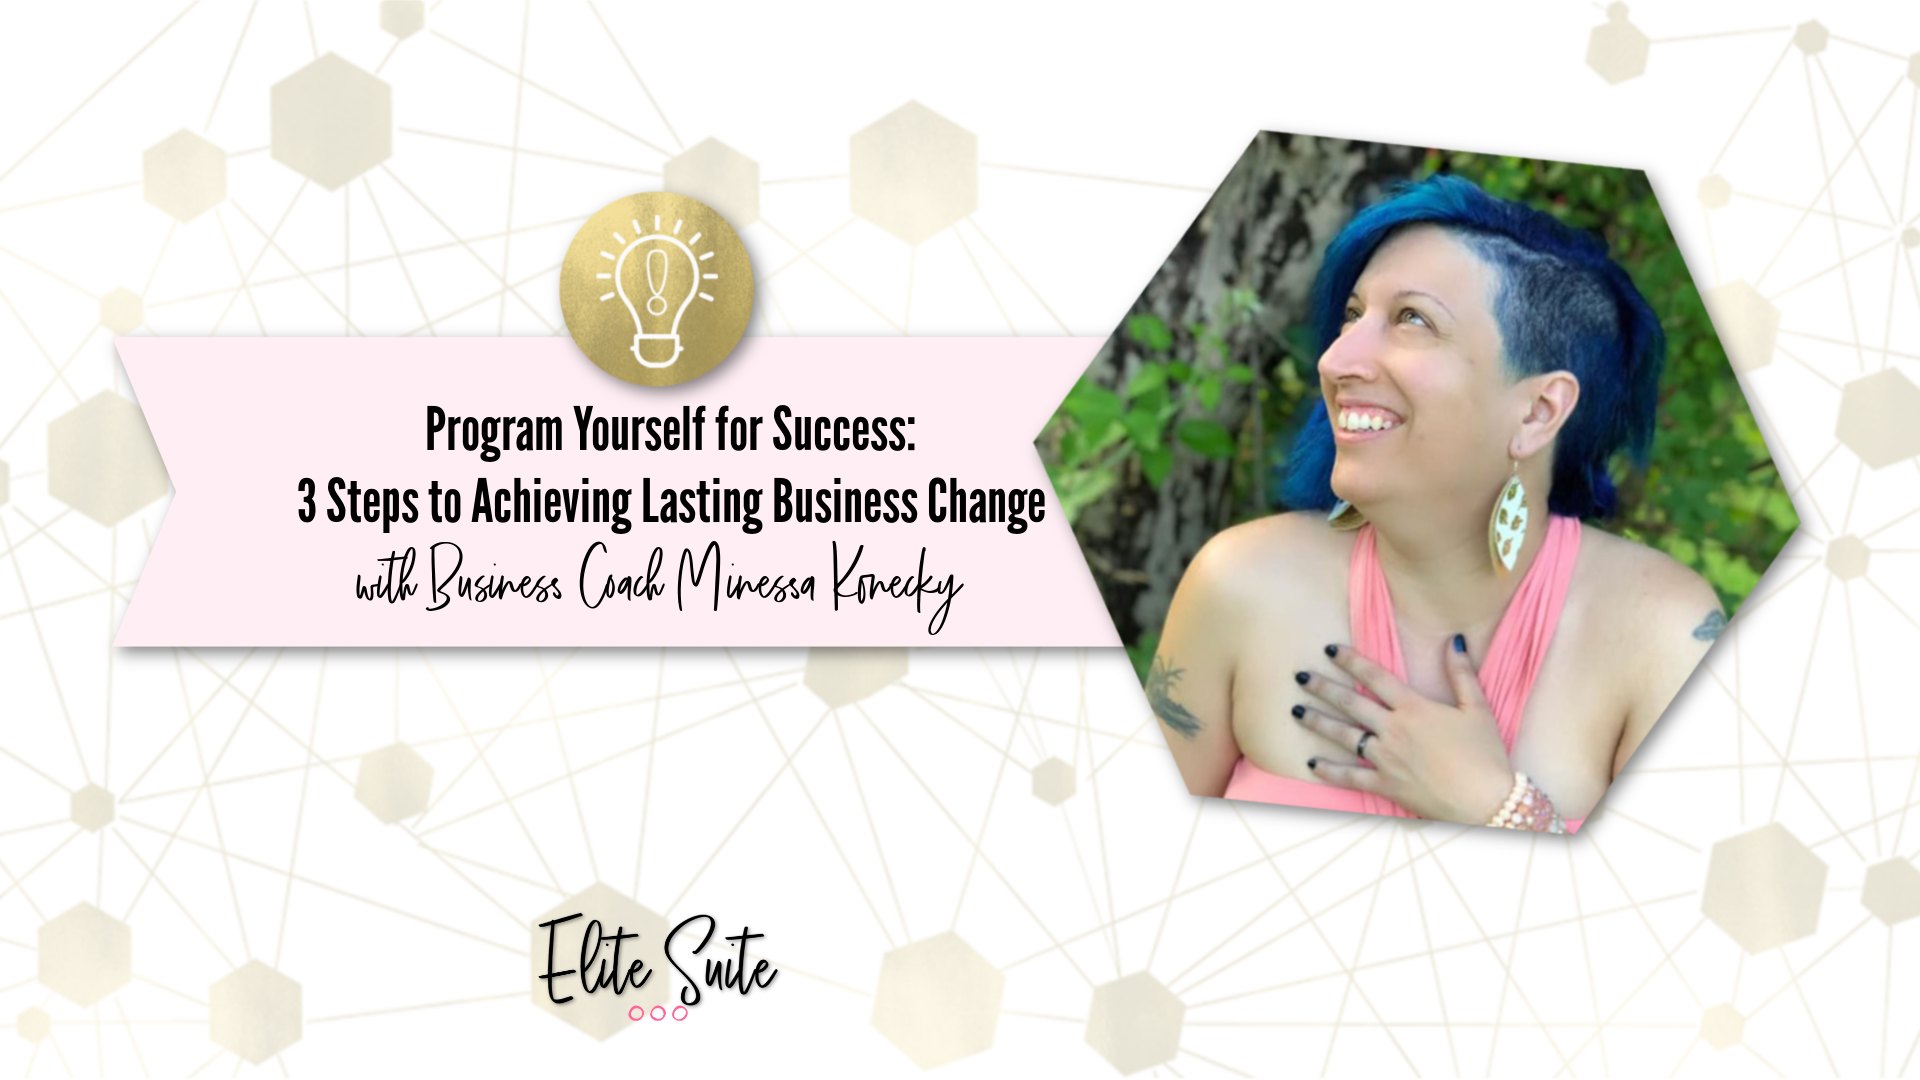 Program Yourself for Success: 3 Steps to Achieving True and Lasting Business Change - Masterclass Title Overlay - Featured Image